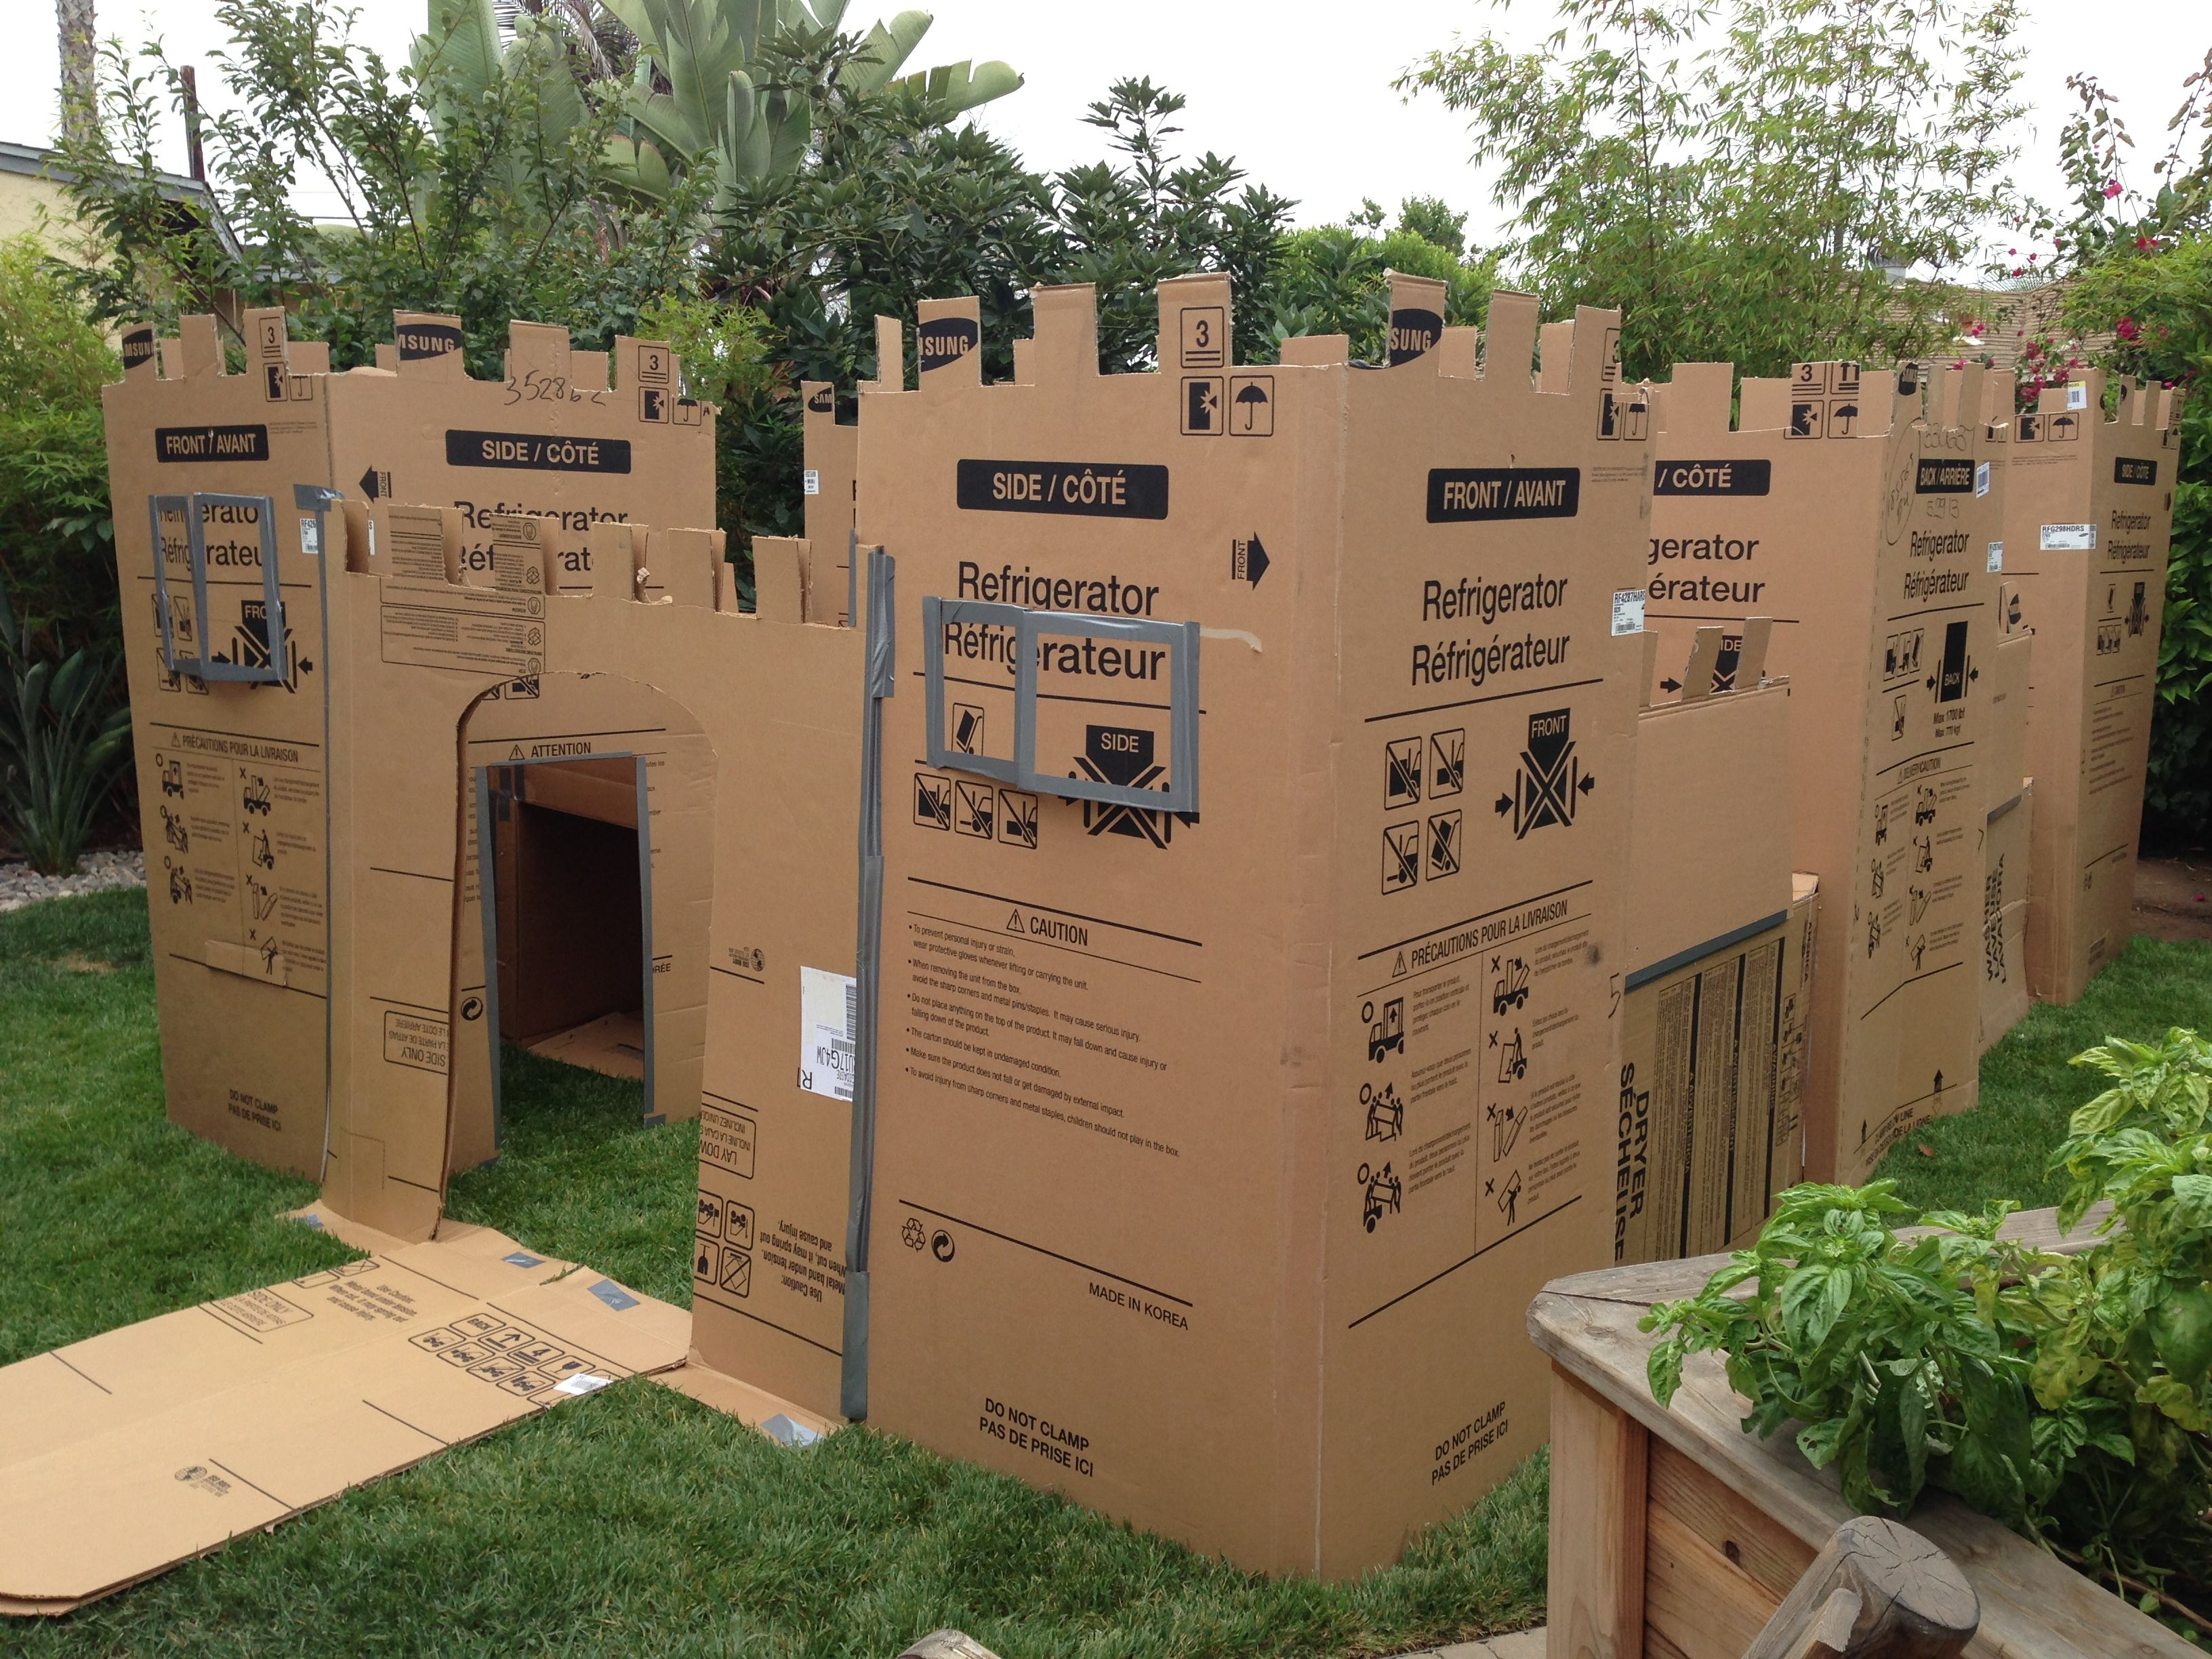 5 Cool Forts to Make With Your Kids • The Lake Country Mom | Cool forts,  Funny pictures, Cardboard castle